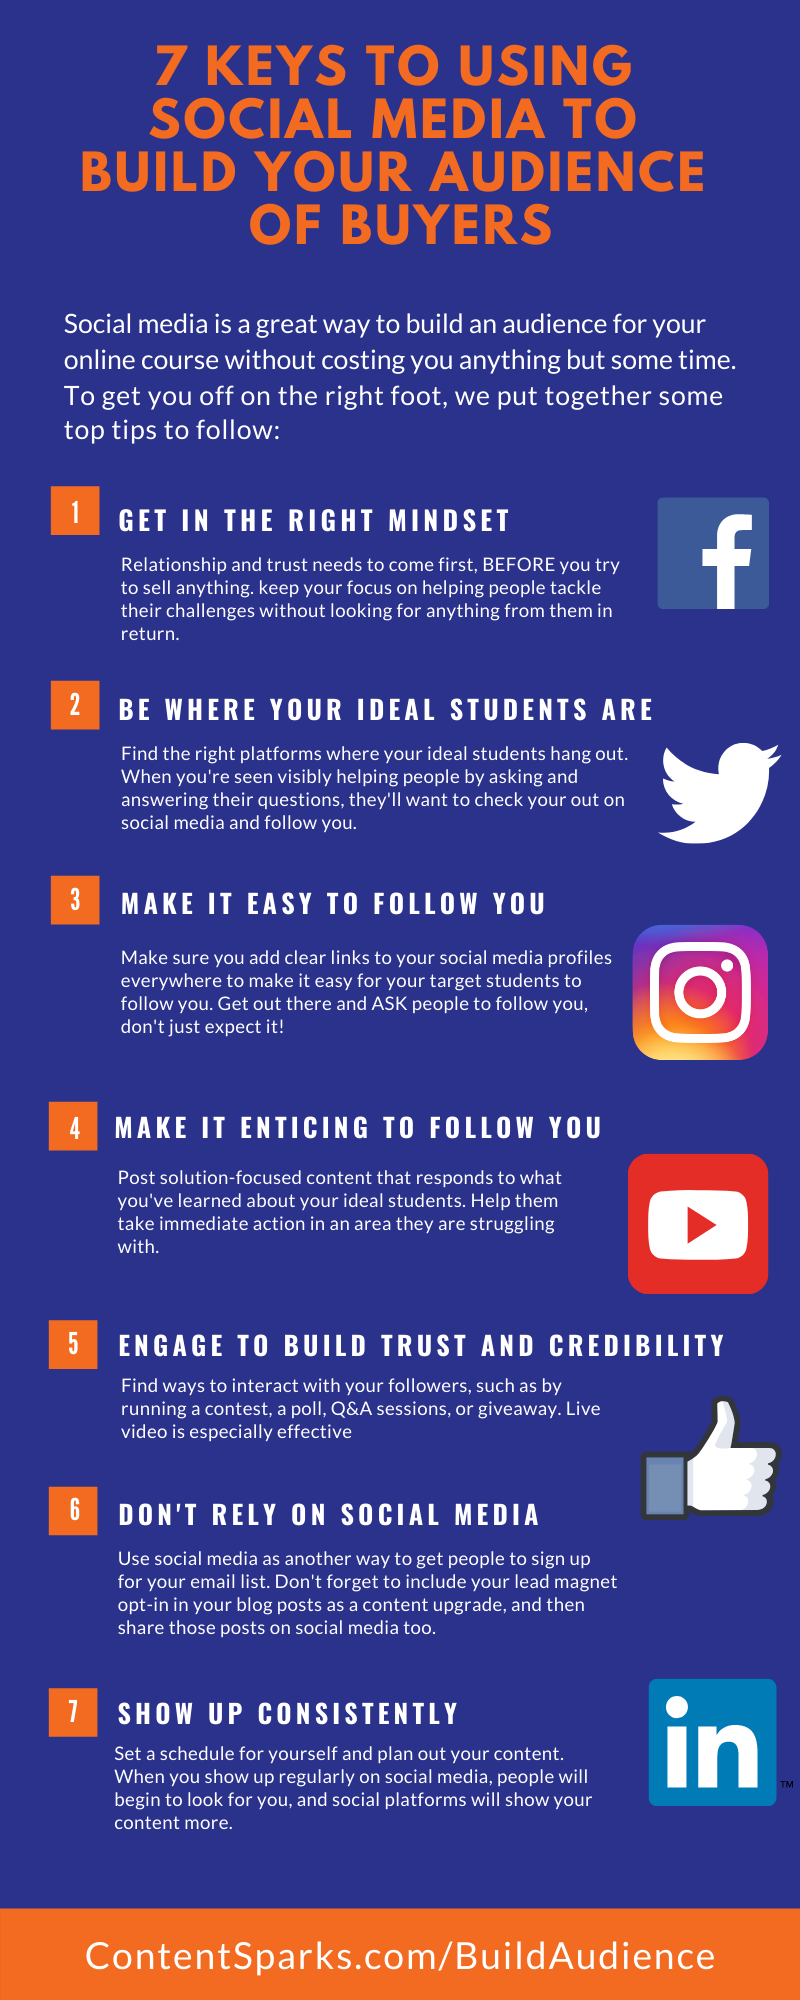 Keys to Using Social Media to Build Your Audience